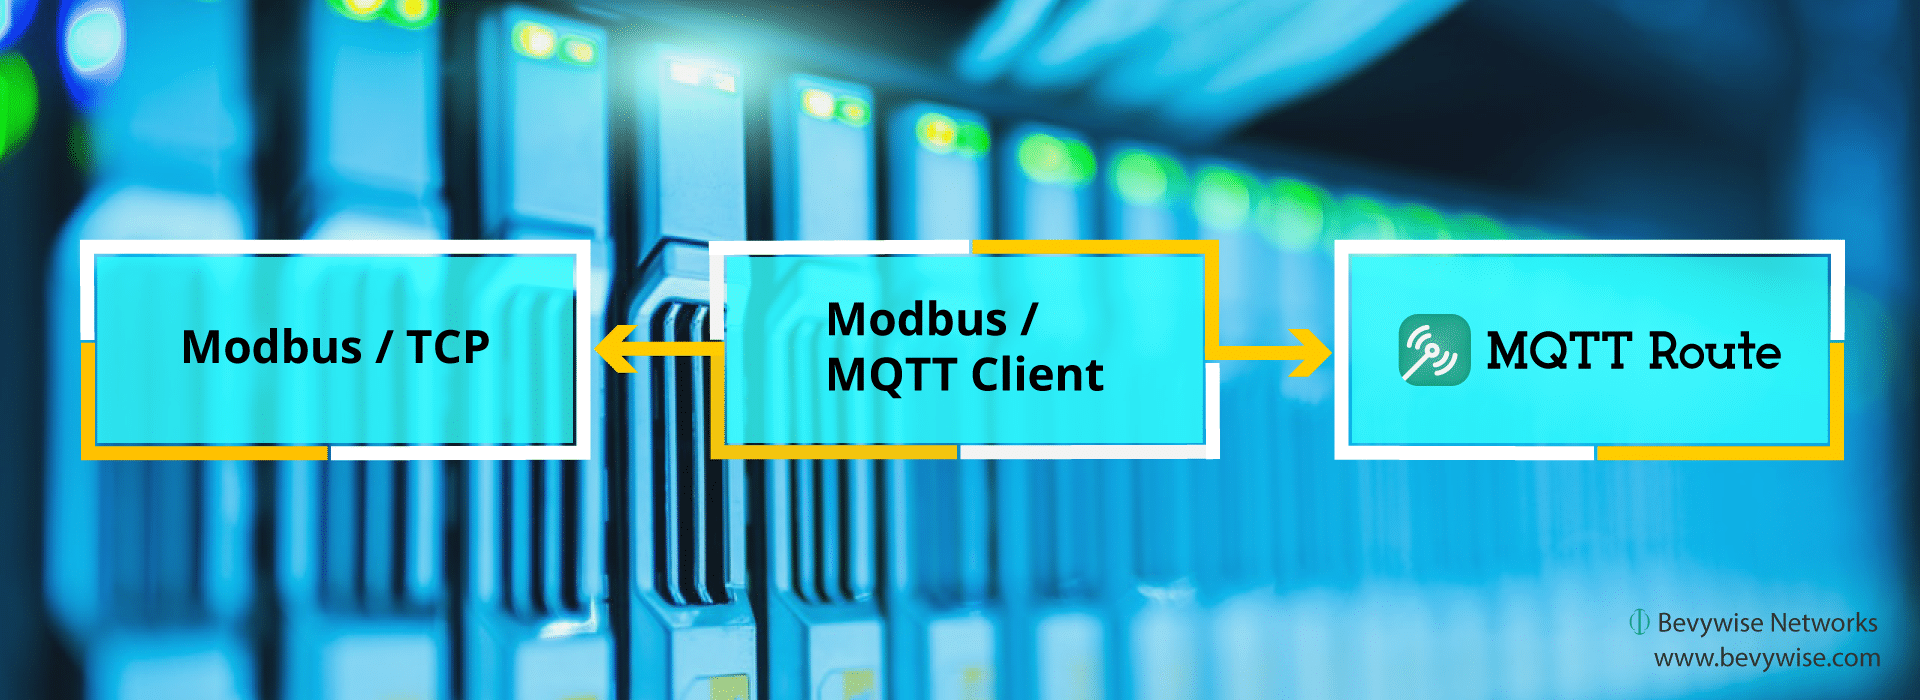 Modbus IoT integration